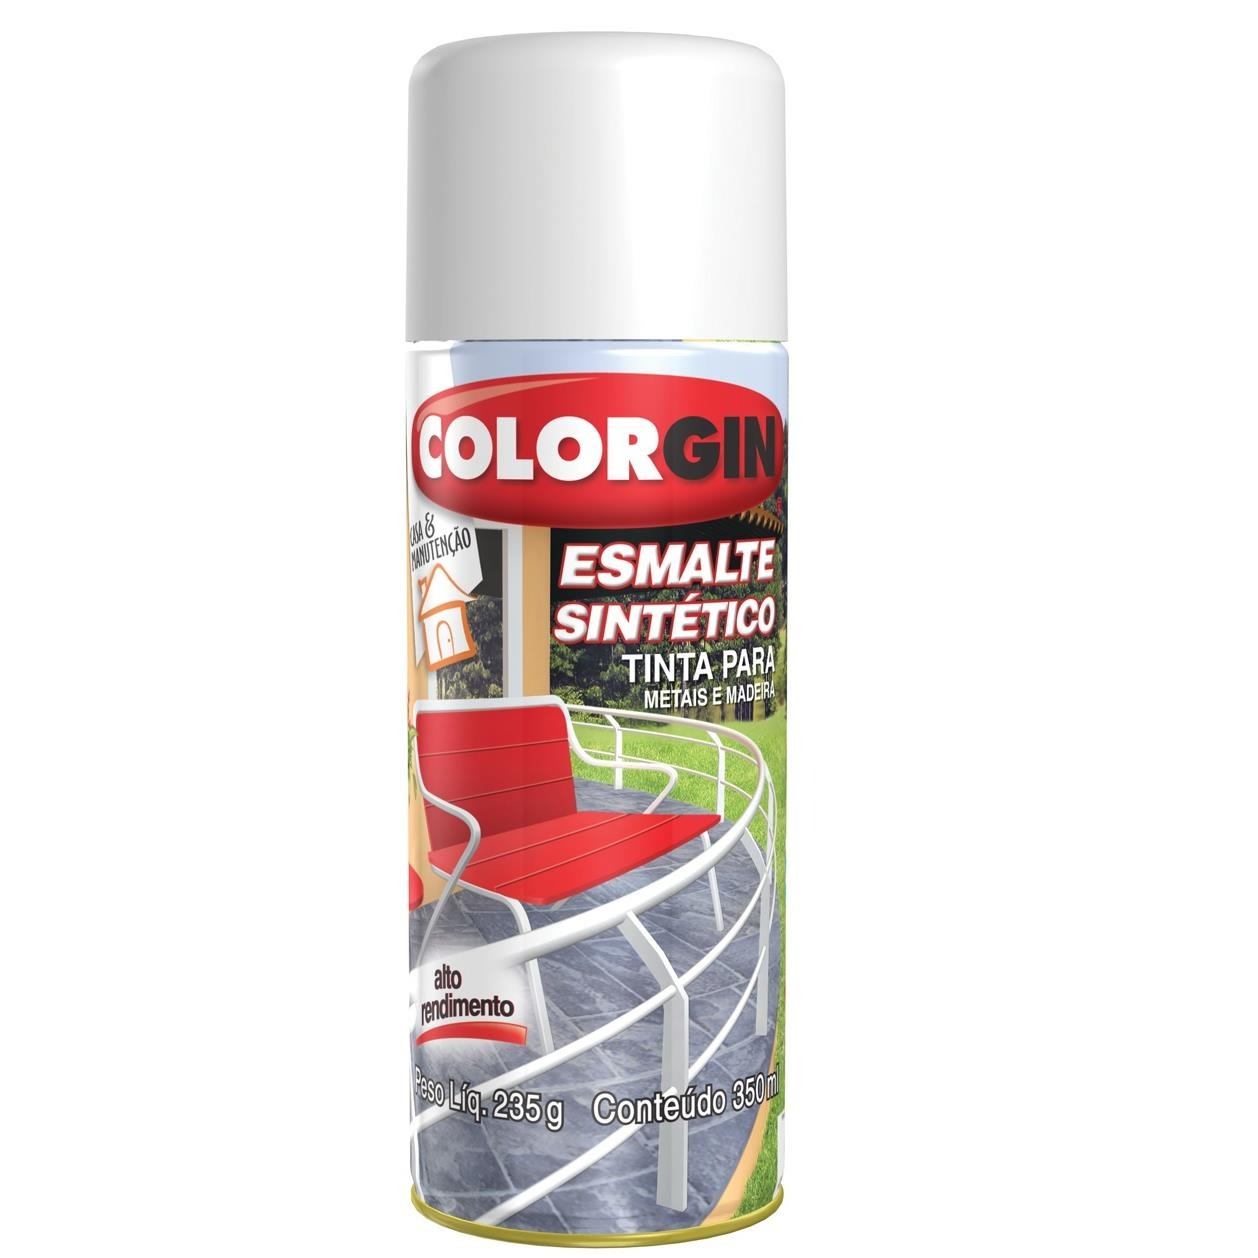 Tinta Spray Brilhante Esmalte sintetico Interno e Externo - Preto - 350ml - Colorgin